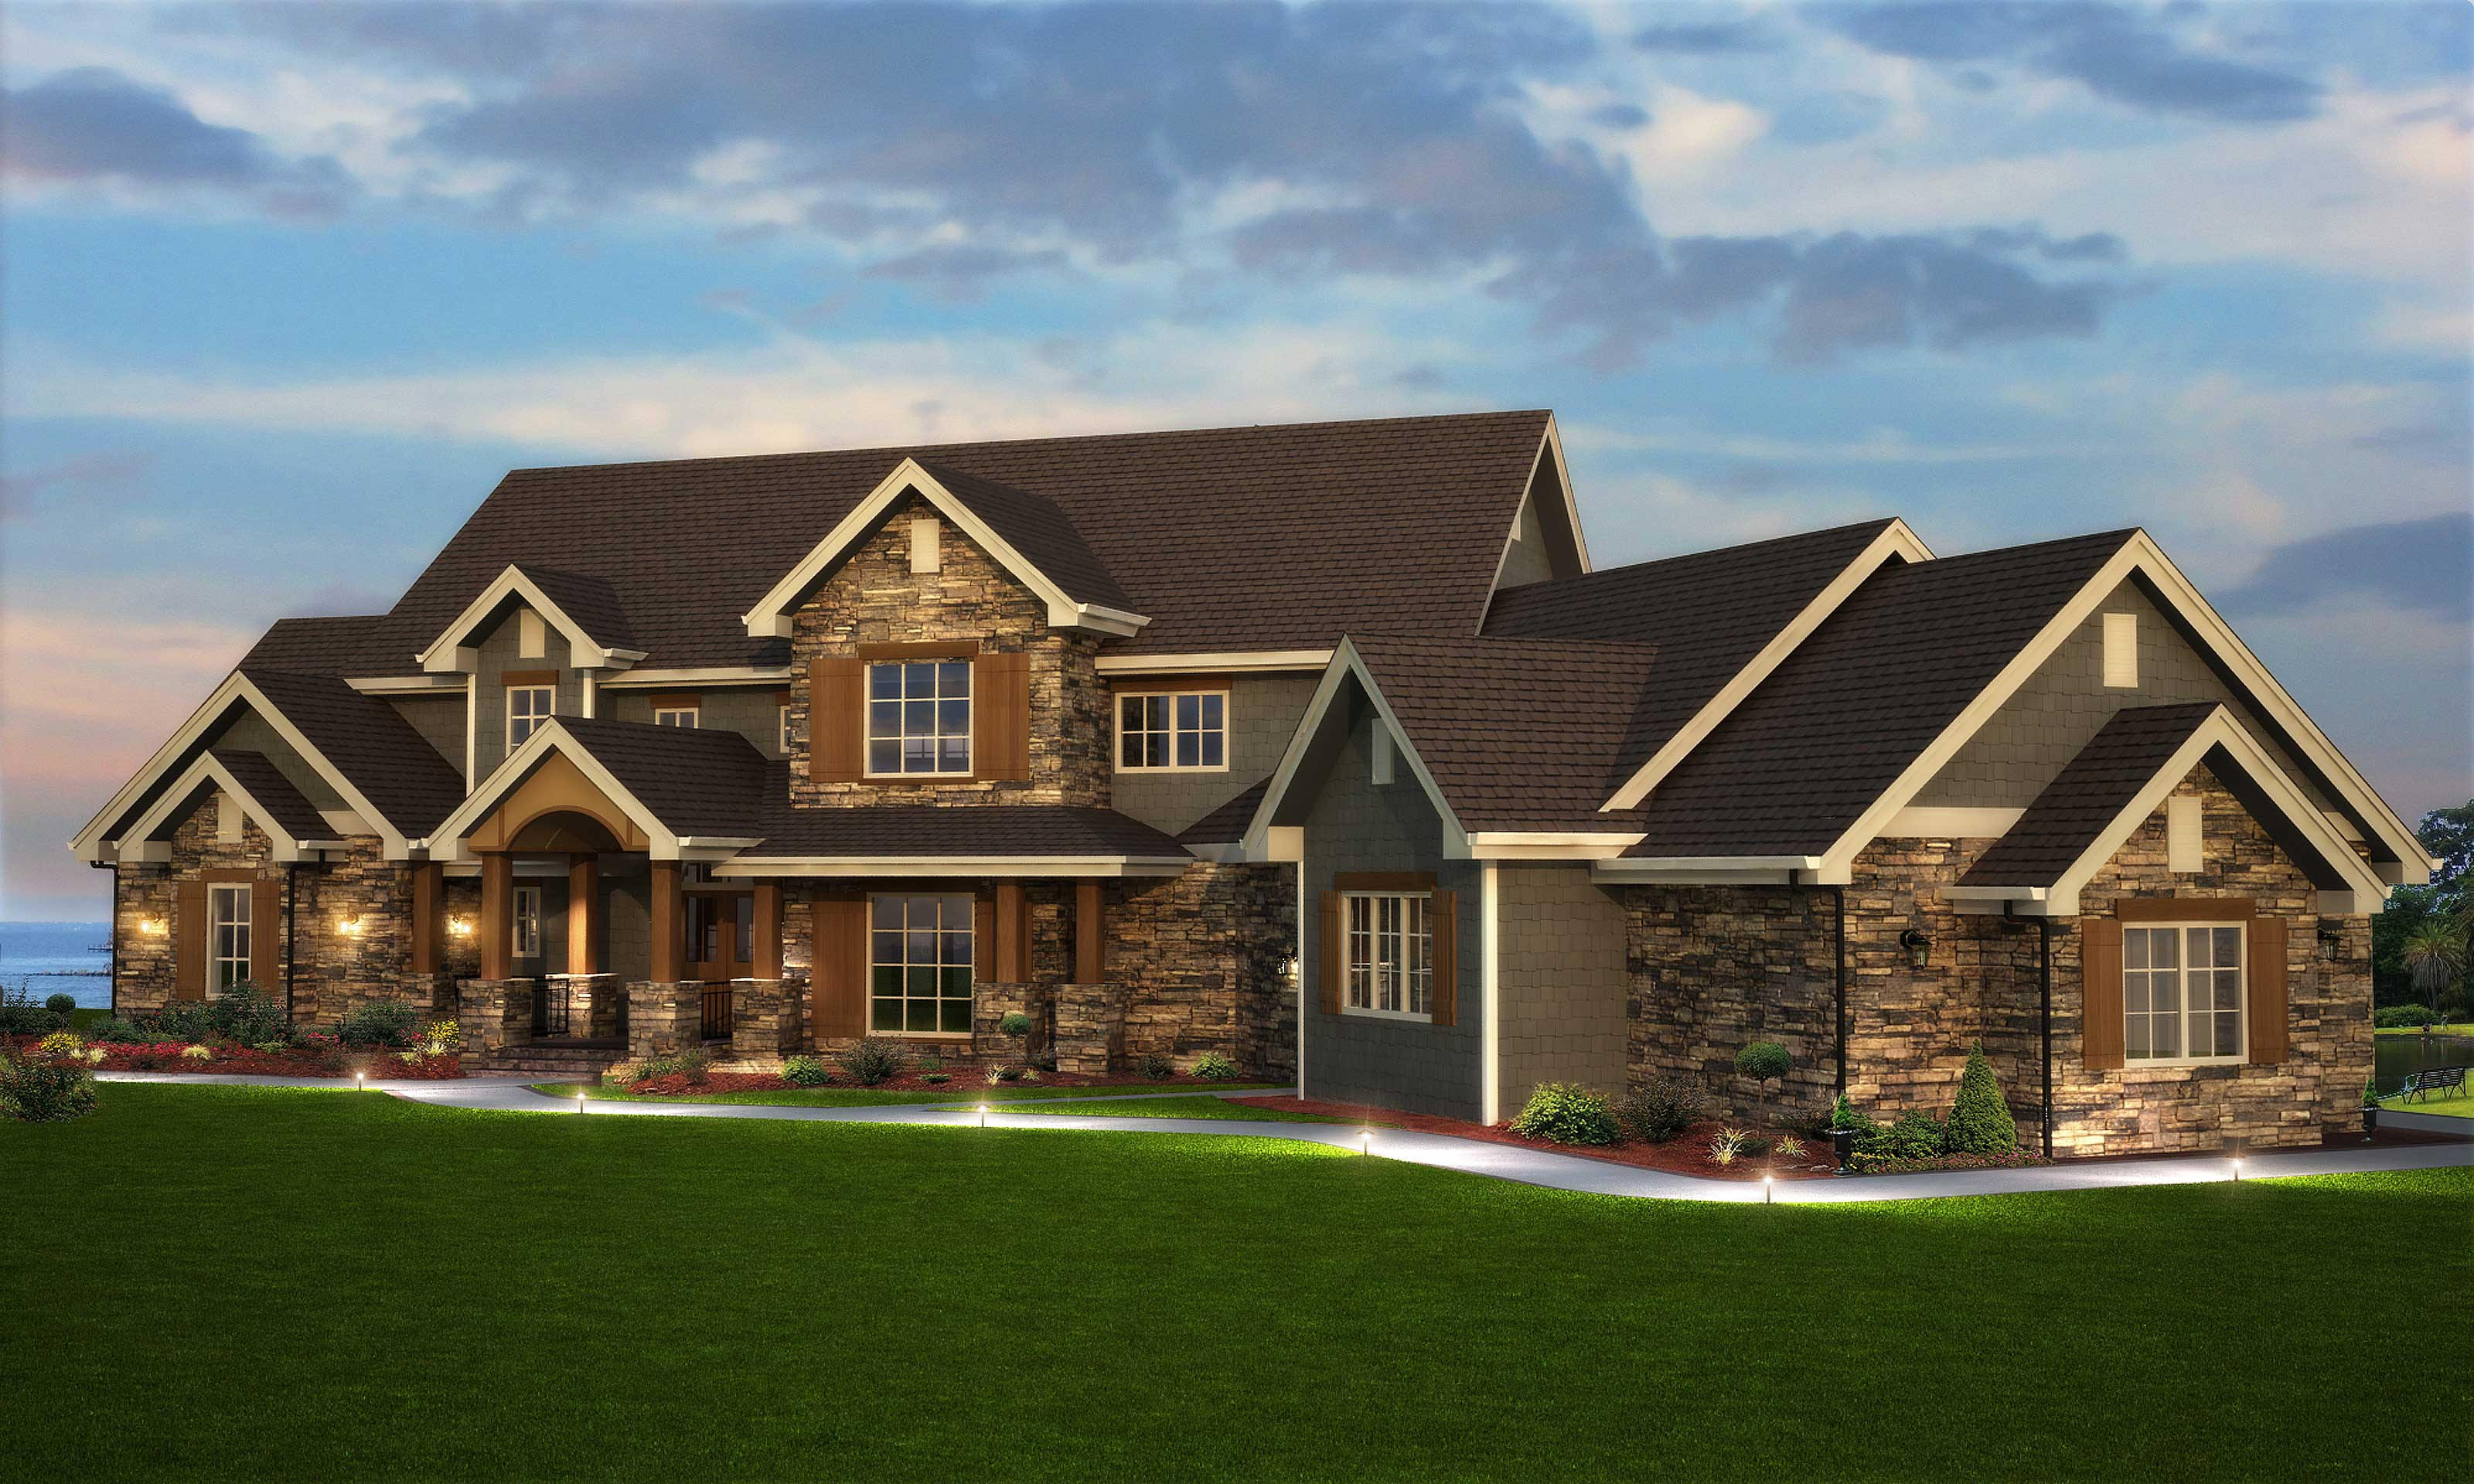 five bedroom houses 5 bedroom house plan luxury transitional style 5164 sq ft 4647